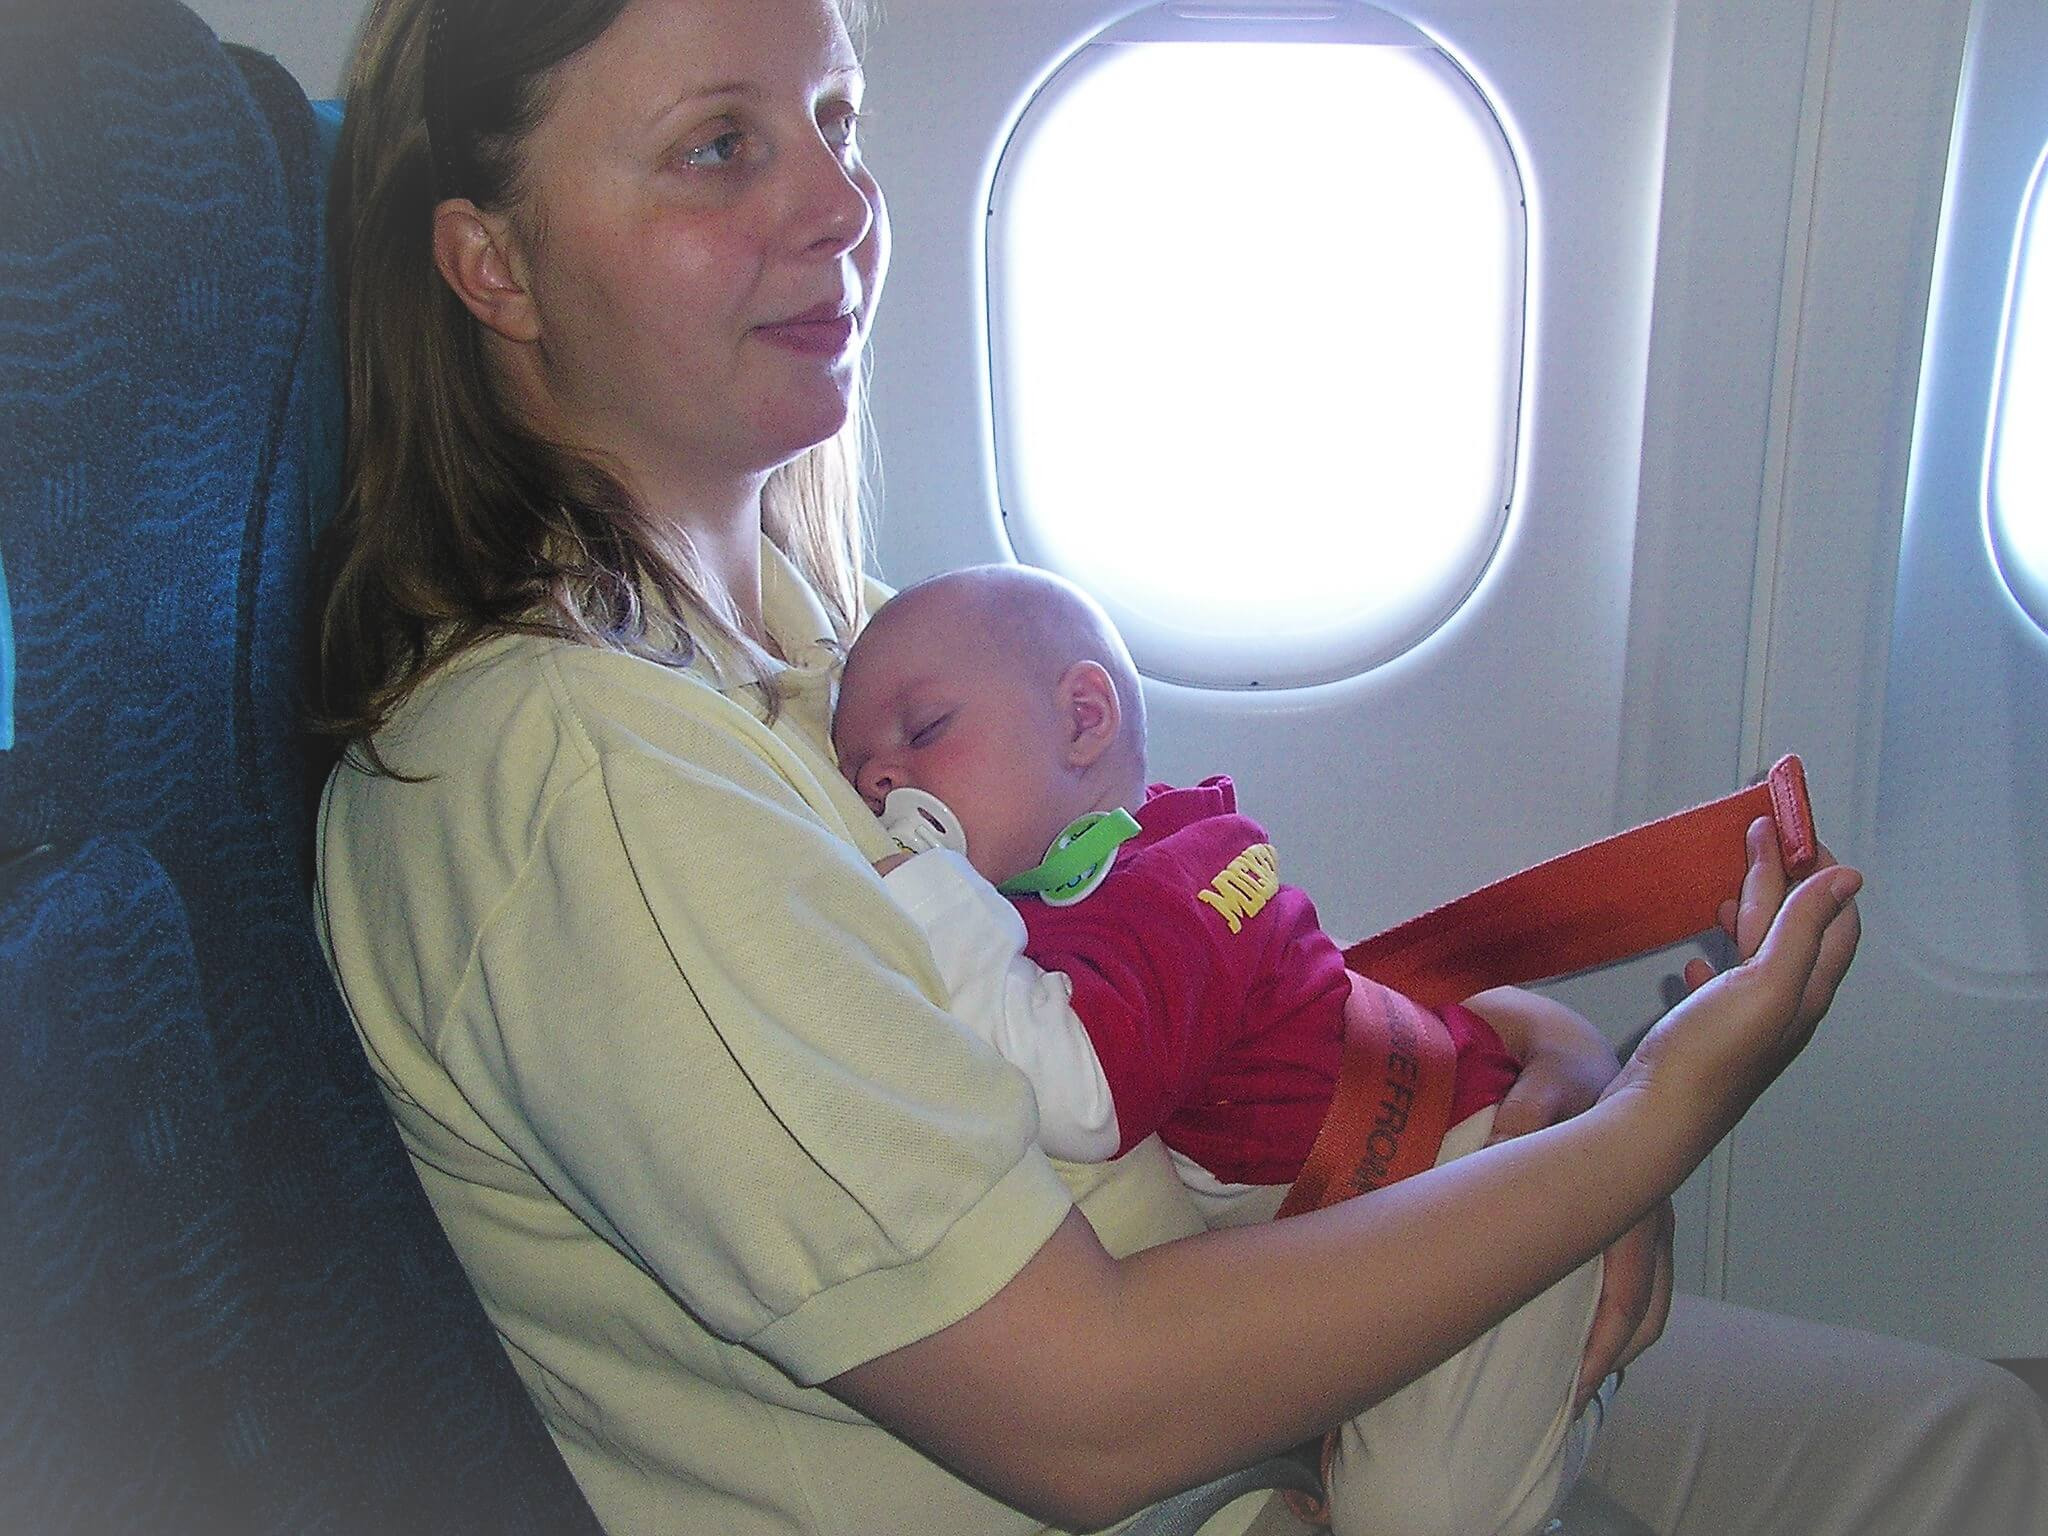 Southwest Airlines traveling with infant